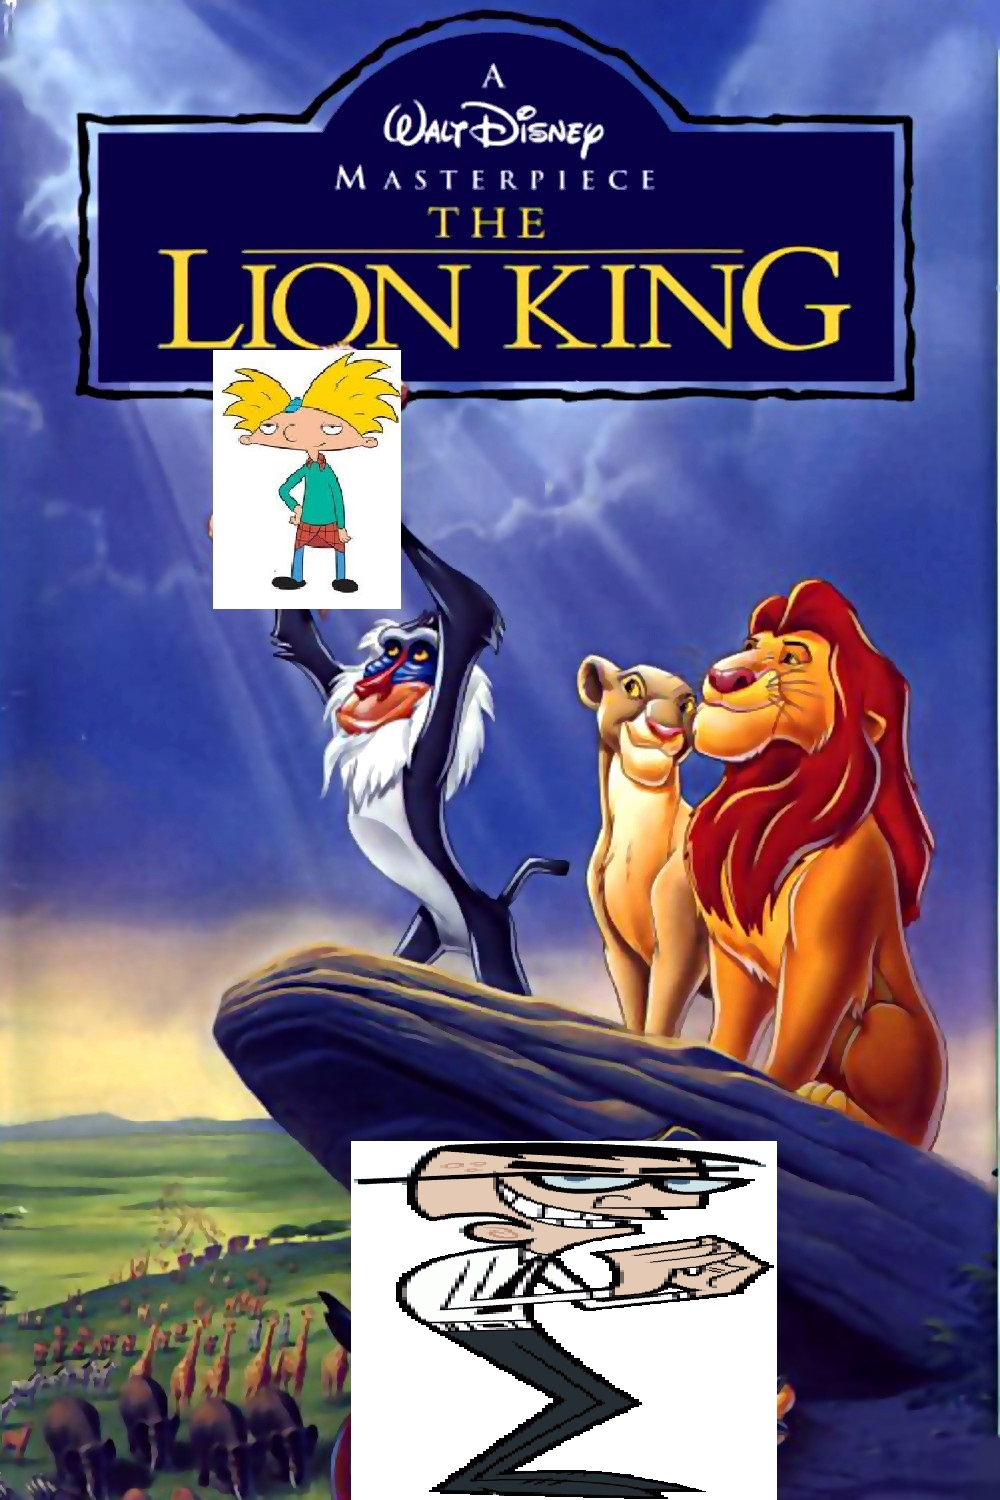 The Human King Starring Arnold Shortman From Quot Hey Arnold